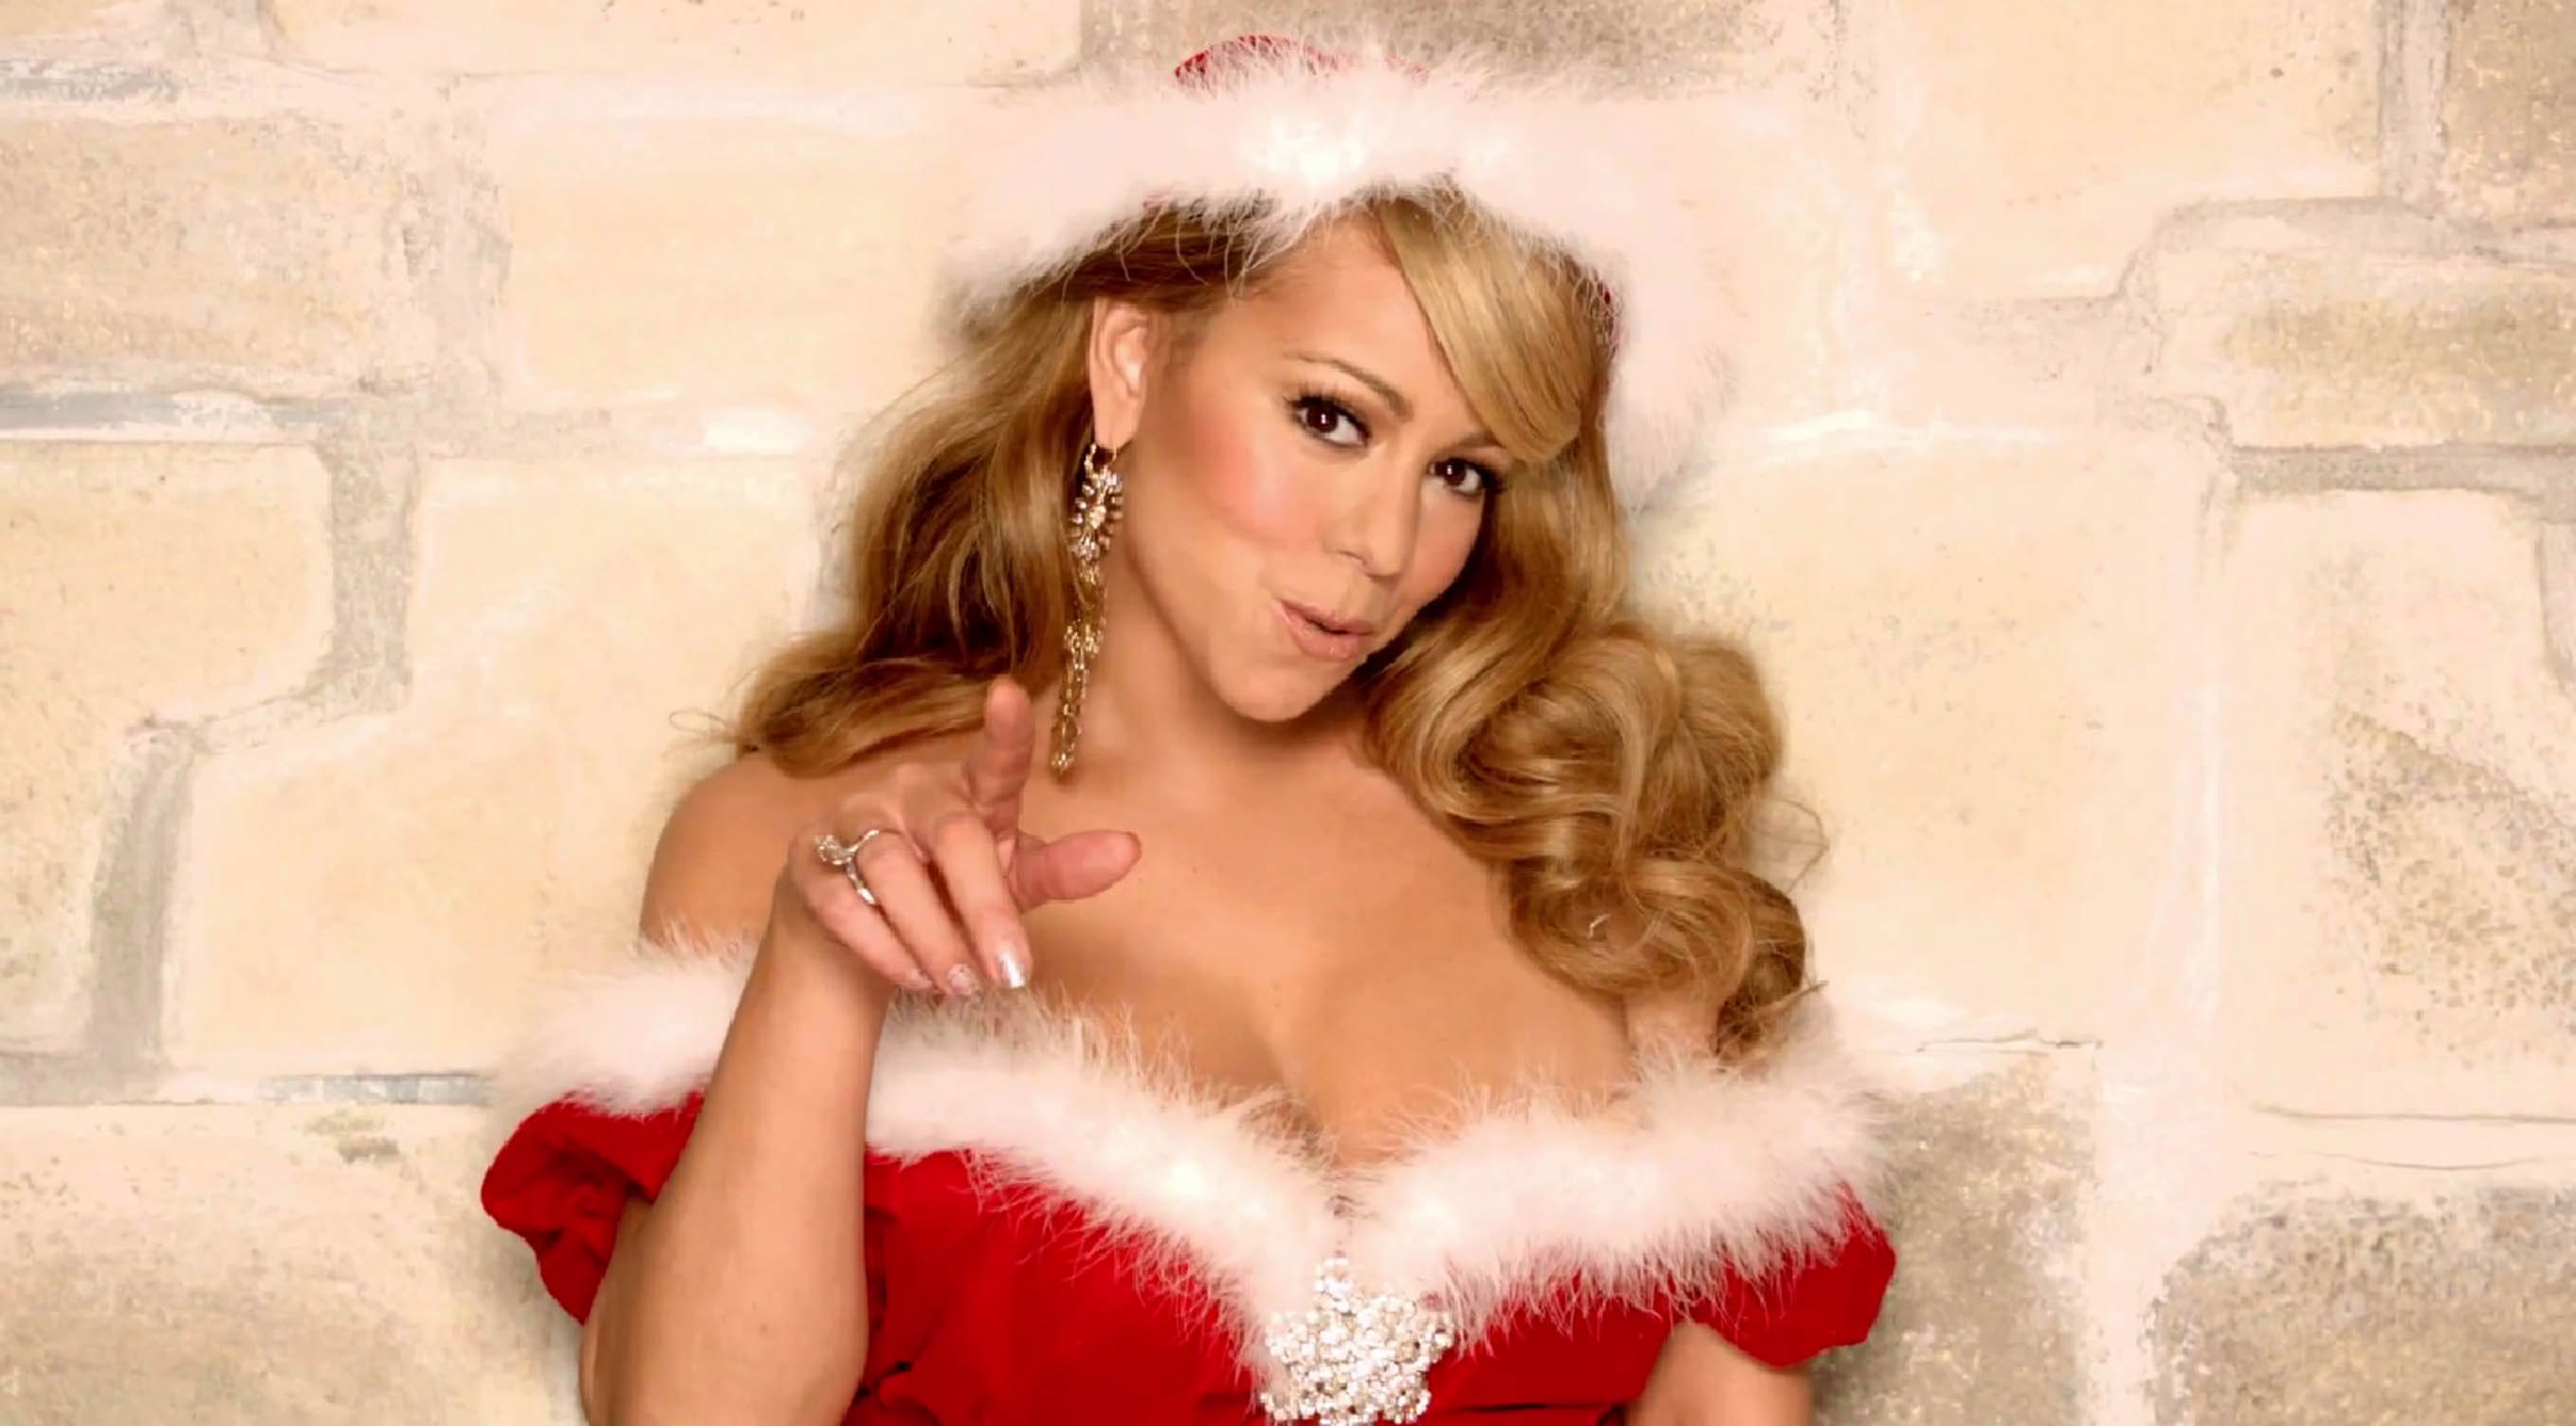 Simak Trailer Film Dokumenter Mariah Carey Yang Terinspirasi Dari Lagu Natal Fenomenal 'all I Want For Christmas Is You'